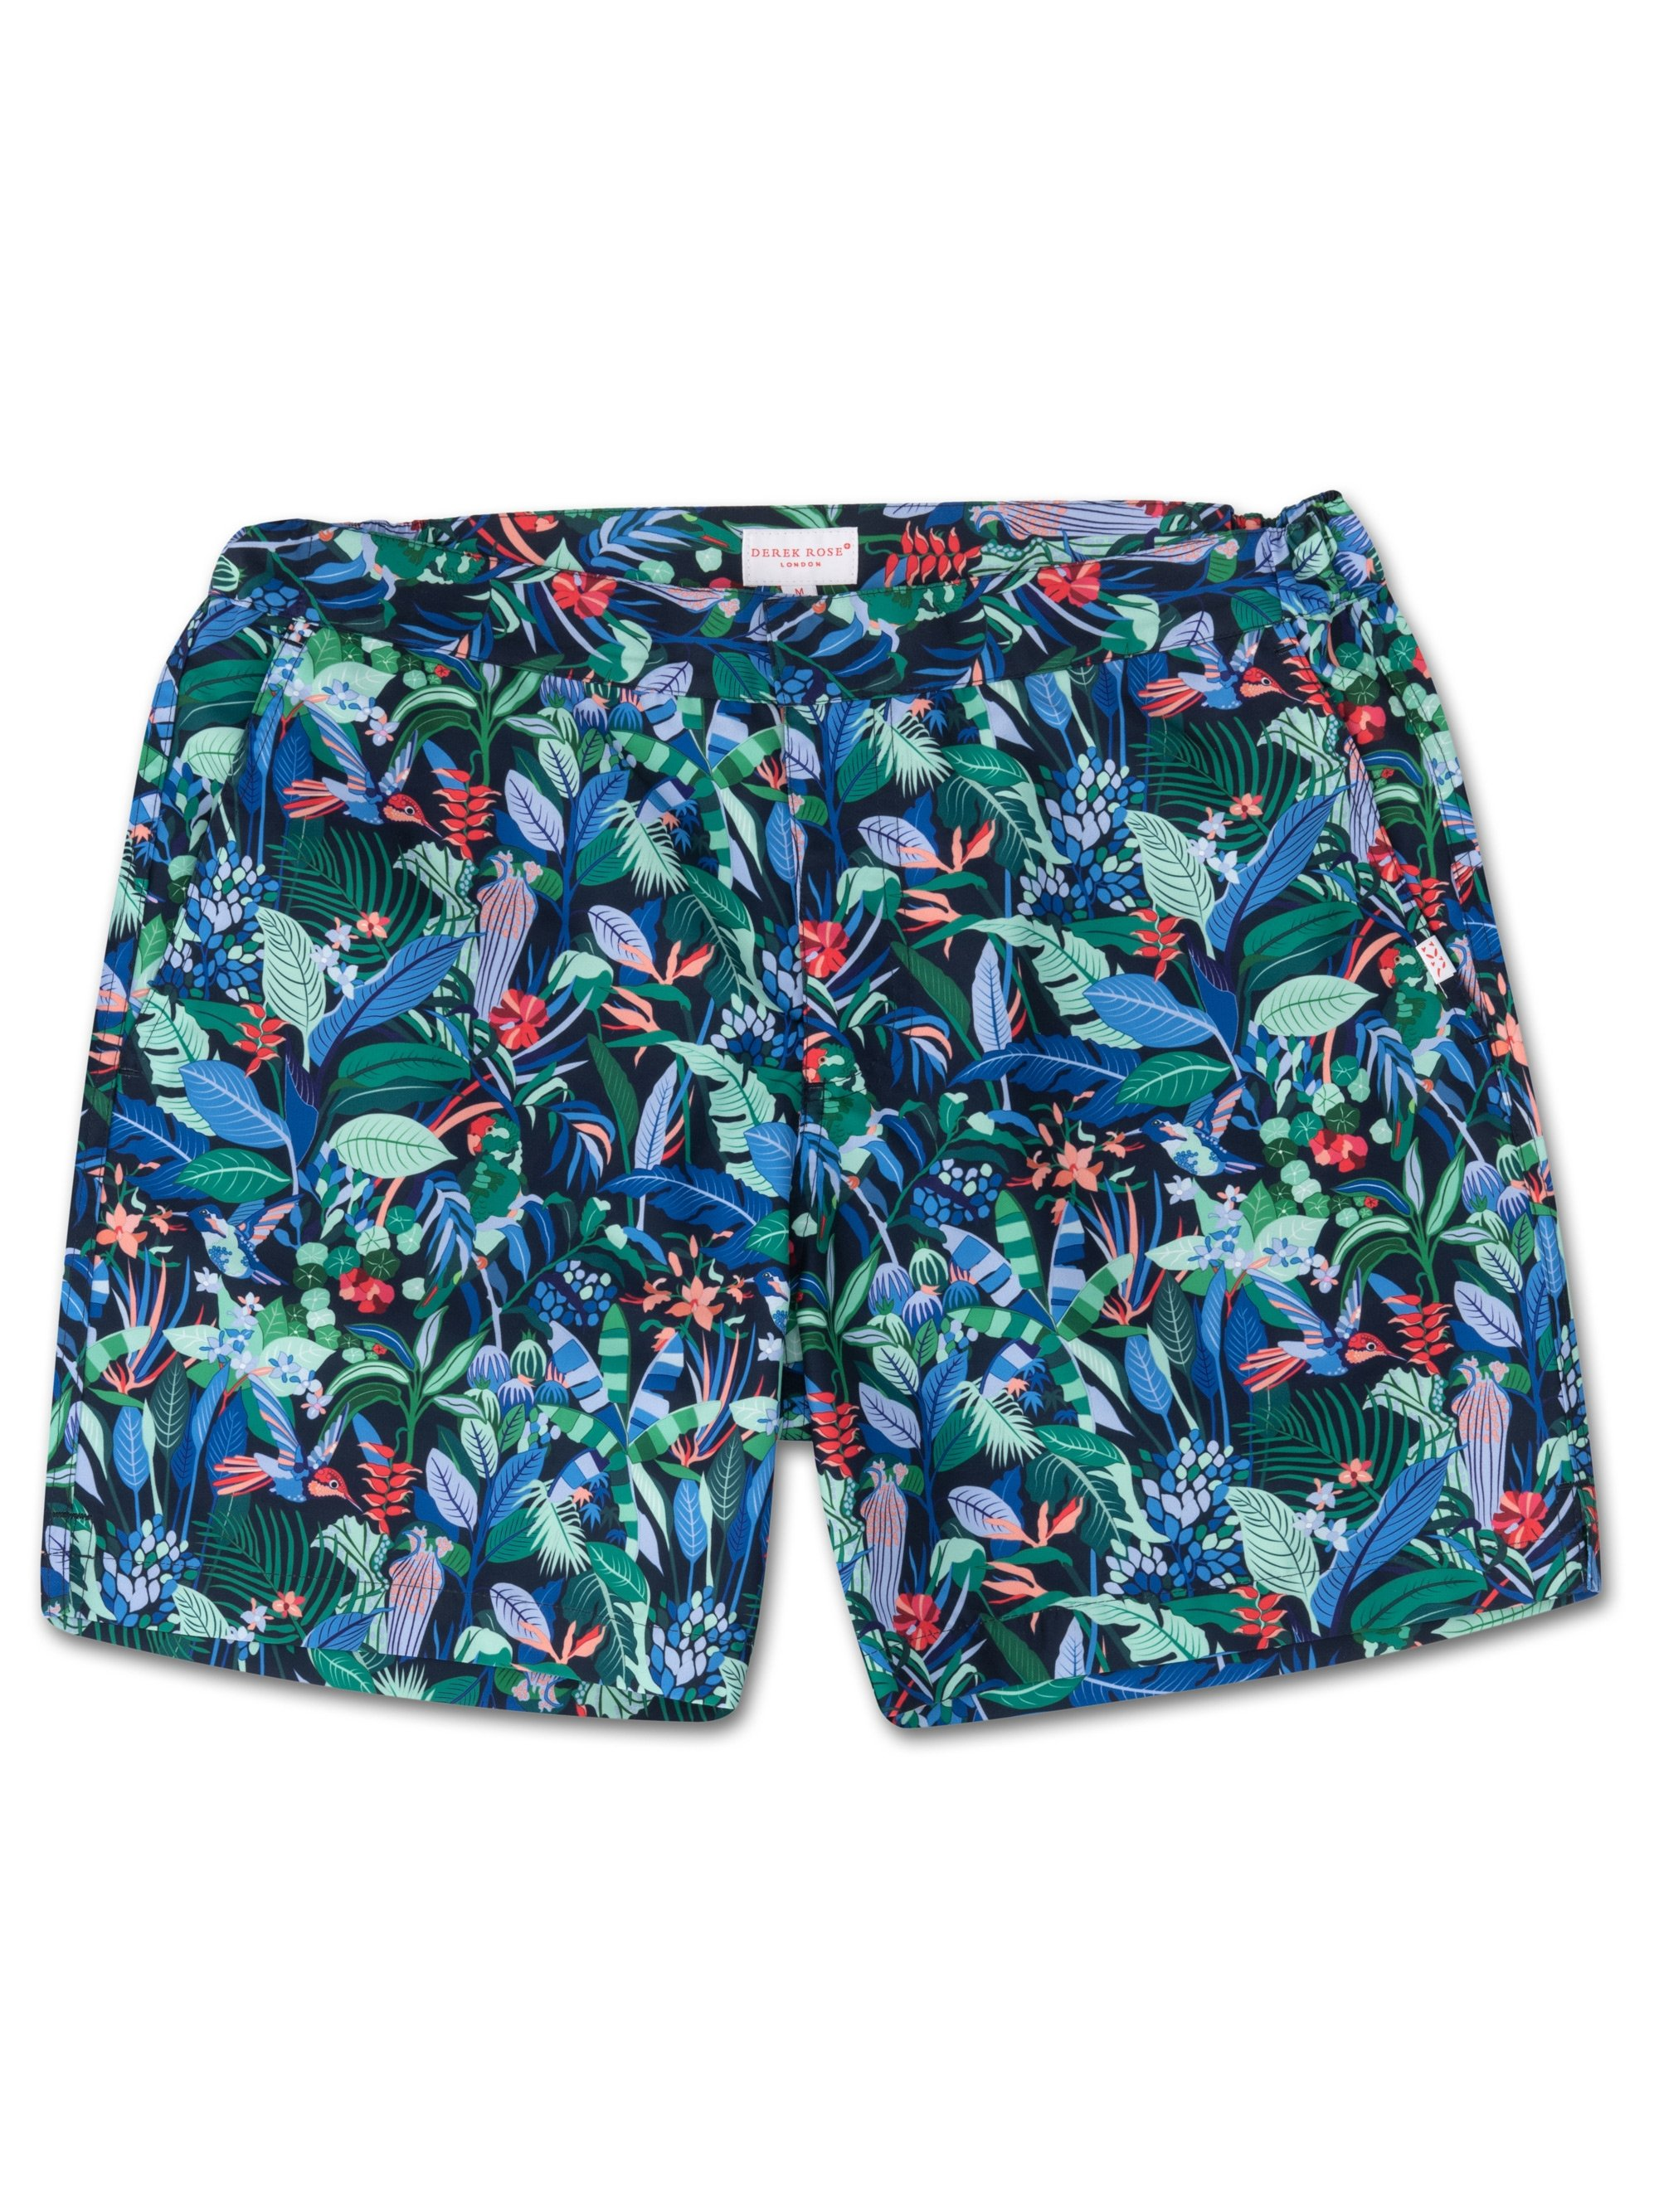 Men's Modern Fit Swim Shorts Maui 15 Navy